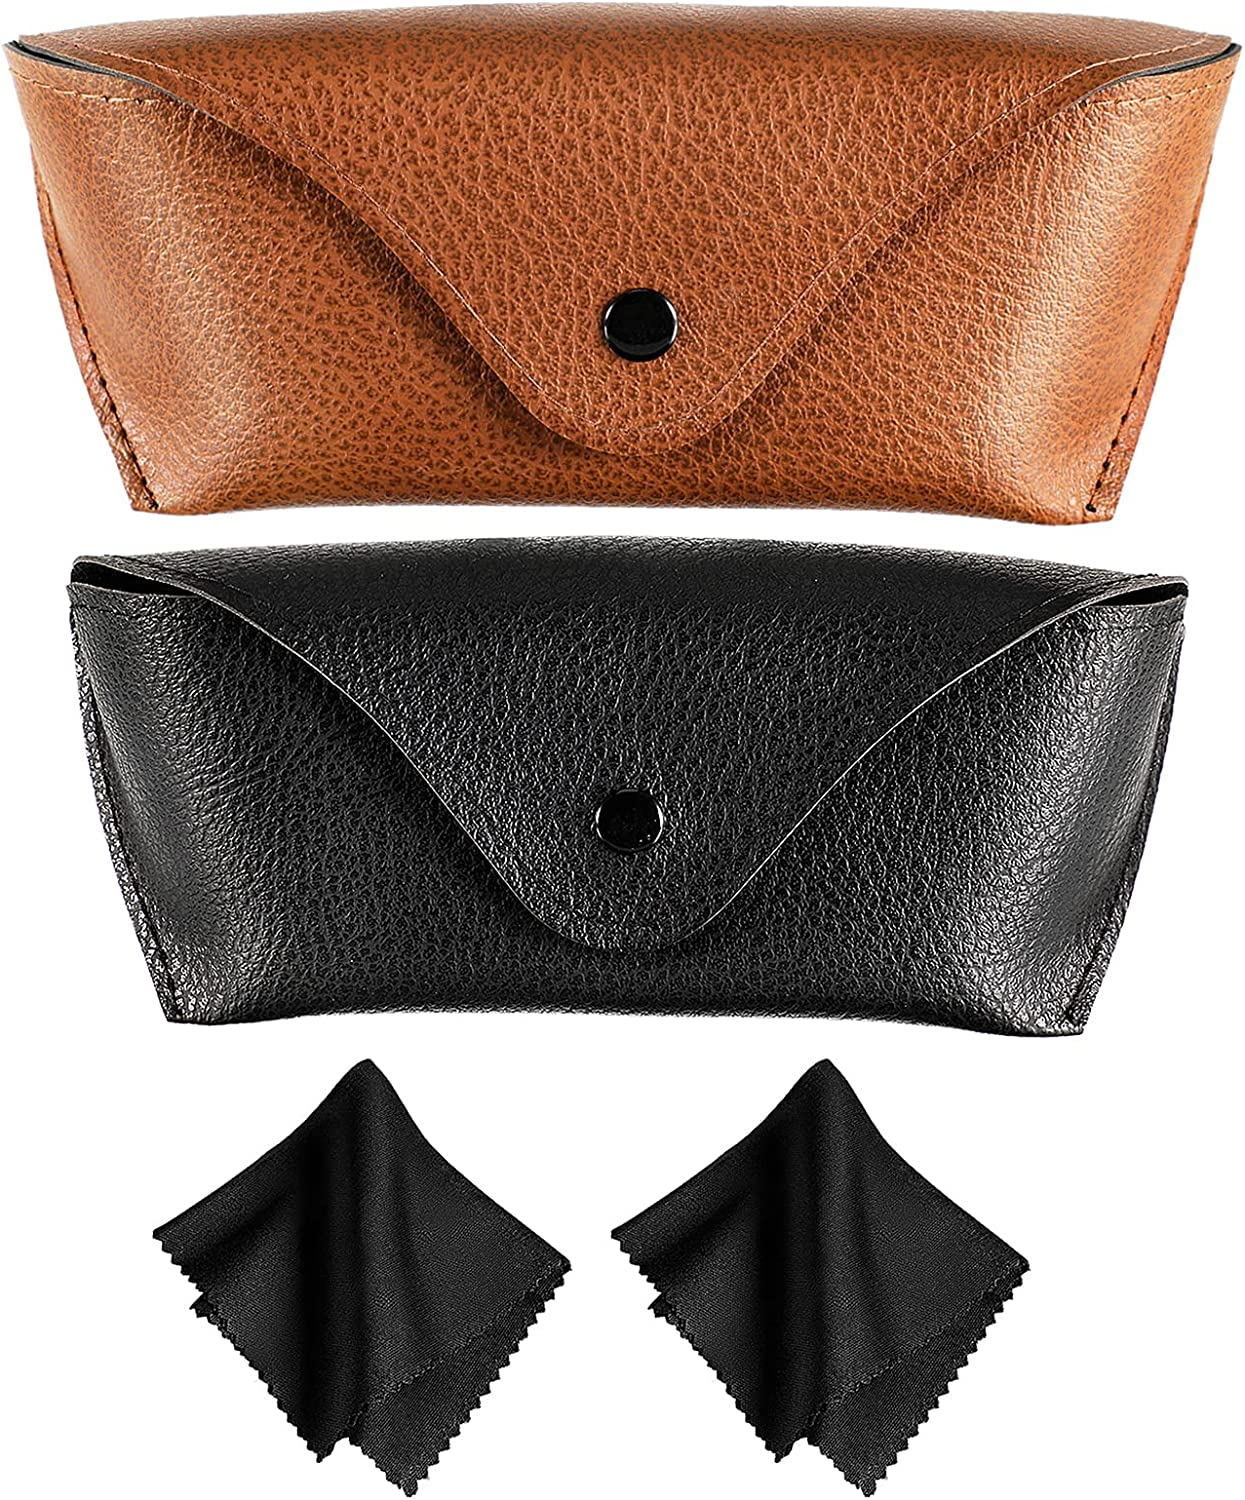 2 Pieces Faux Leather Eyeglasses Cases Portable PU Leather Glasses Cases Soft Sunglasses Pouch Cases with 2 Pieces Glasses Cleaning Cloths for Women Men